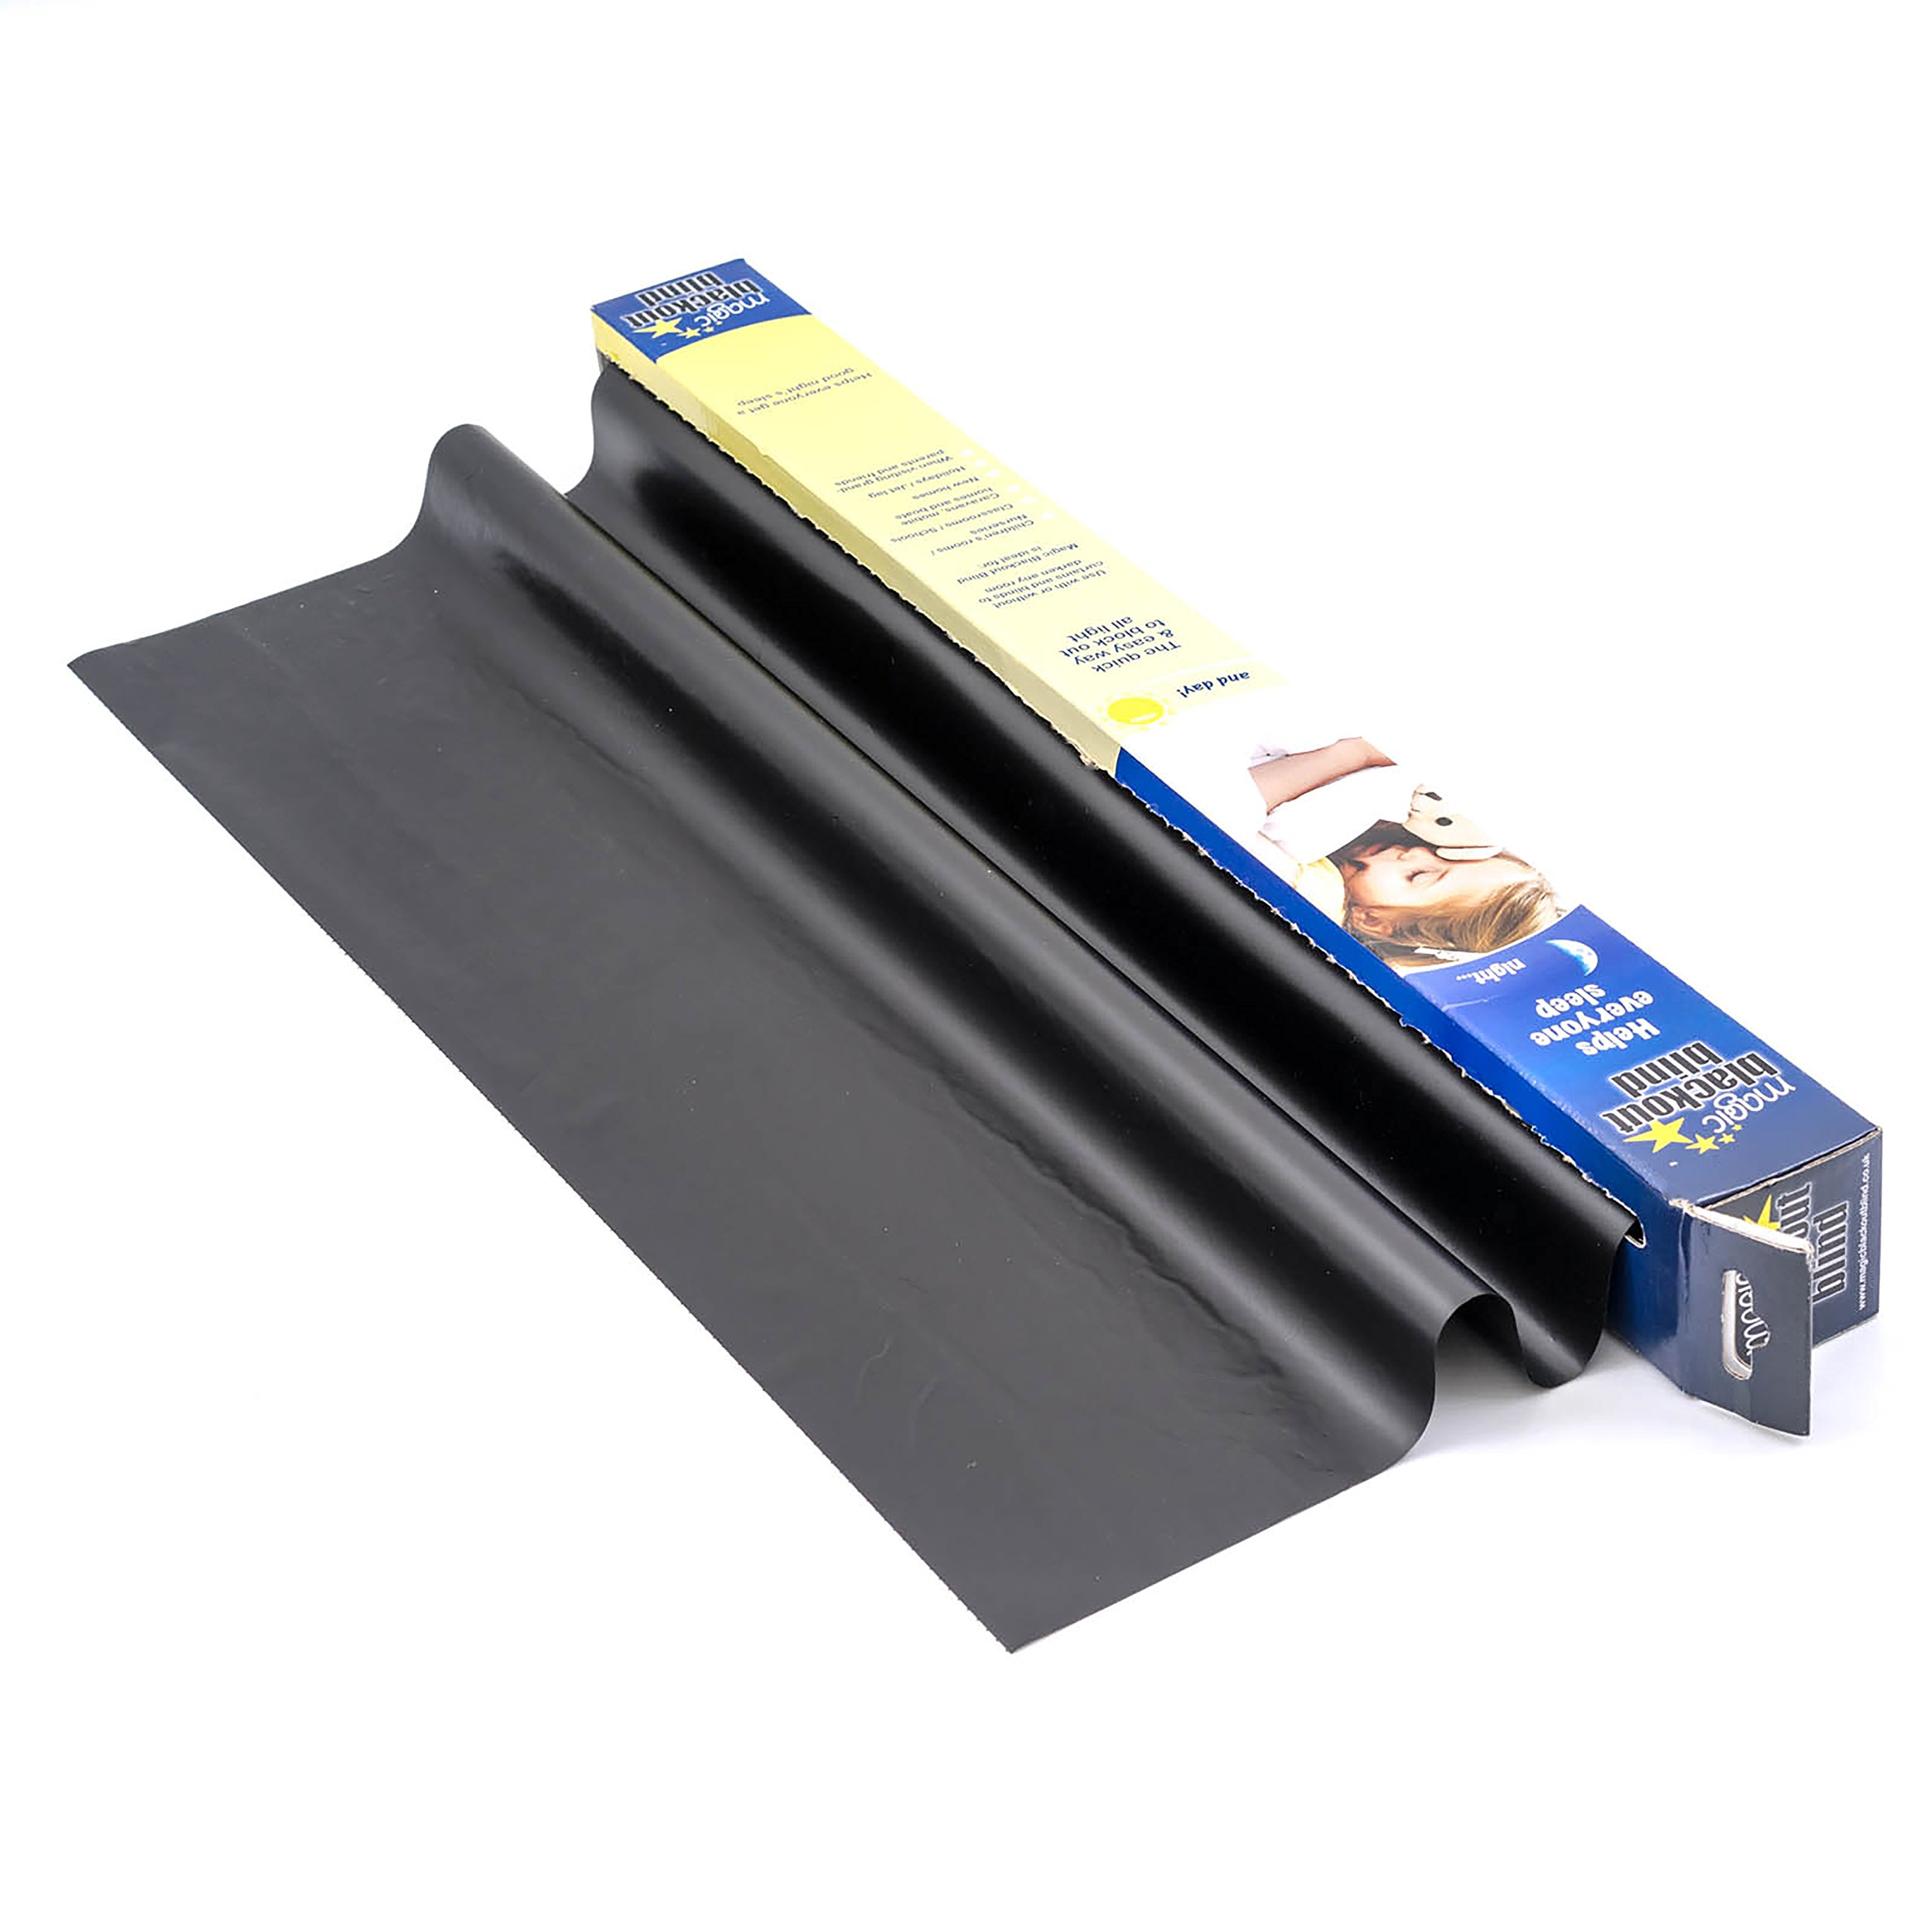 Magic Whiteboard Products Static Cling Dry Erase Sheet Home Office Bedroom BLACKOUT BLIND 100% 23.5'' x 31.5'' 10 Perforated Sheets BLACK (MW4110)